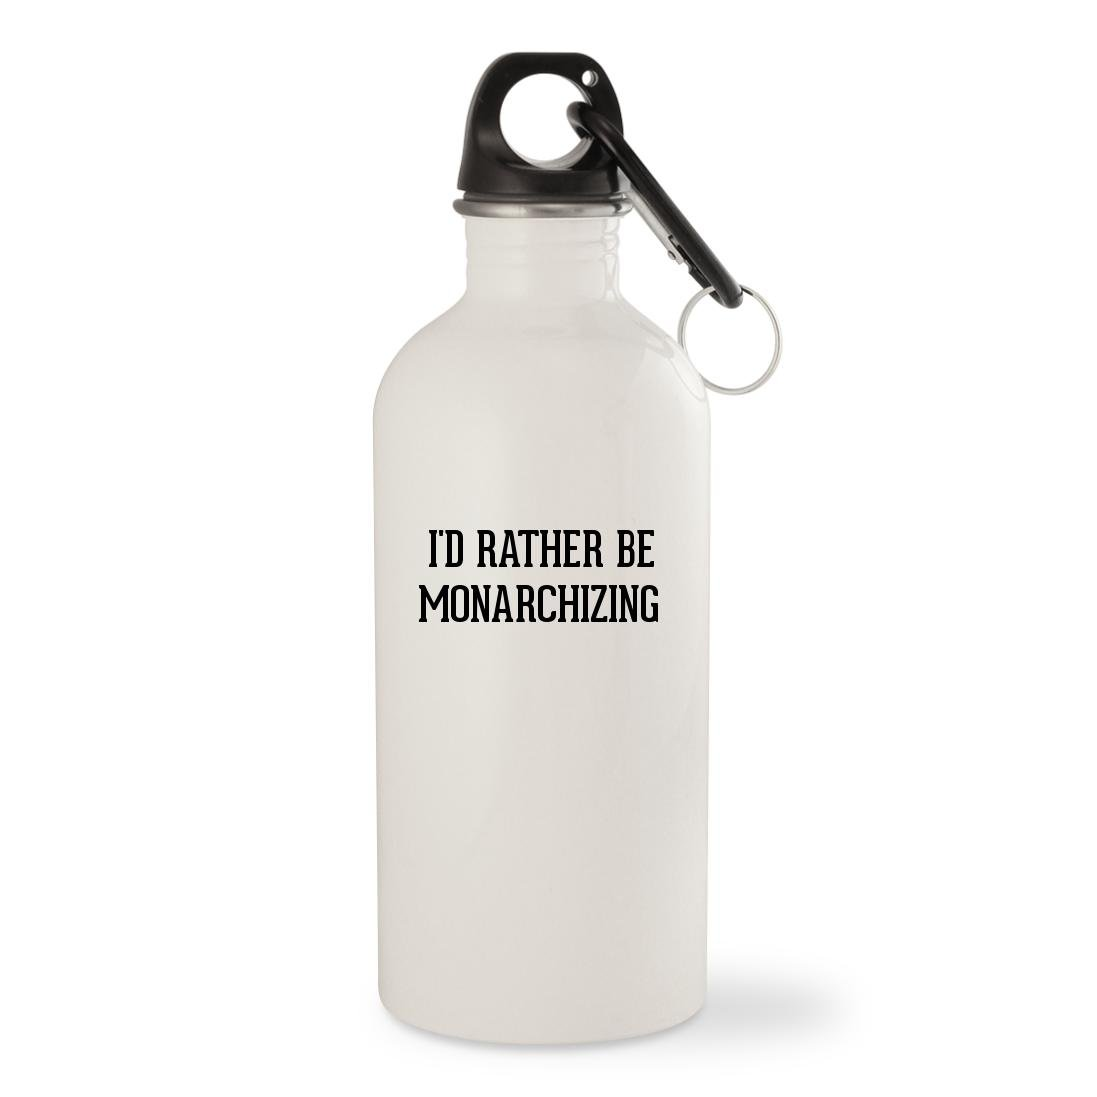 I'd Rather Be MONARCHIZING - White 20oz Stainless Steel Water Bottle with Carabiner